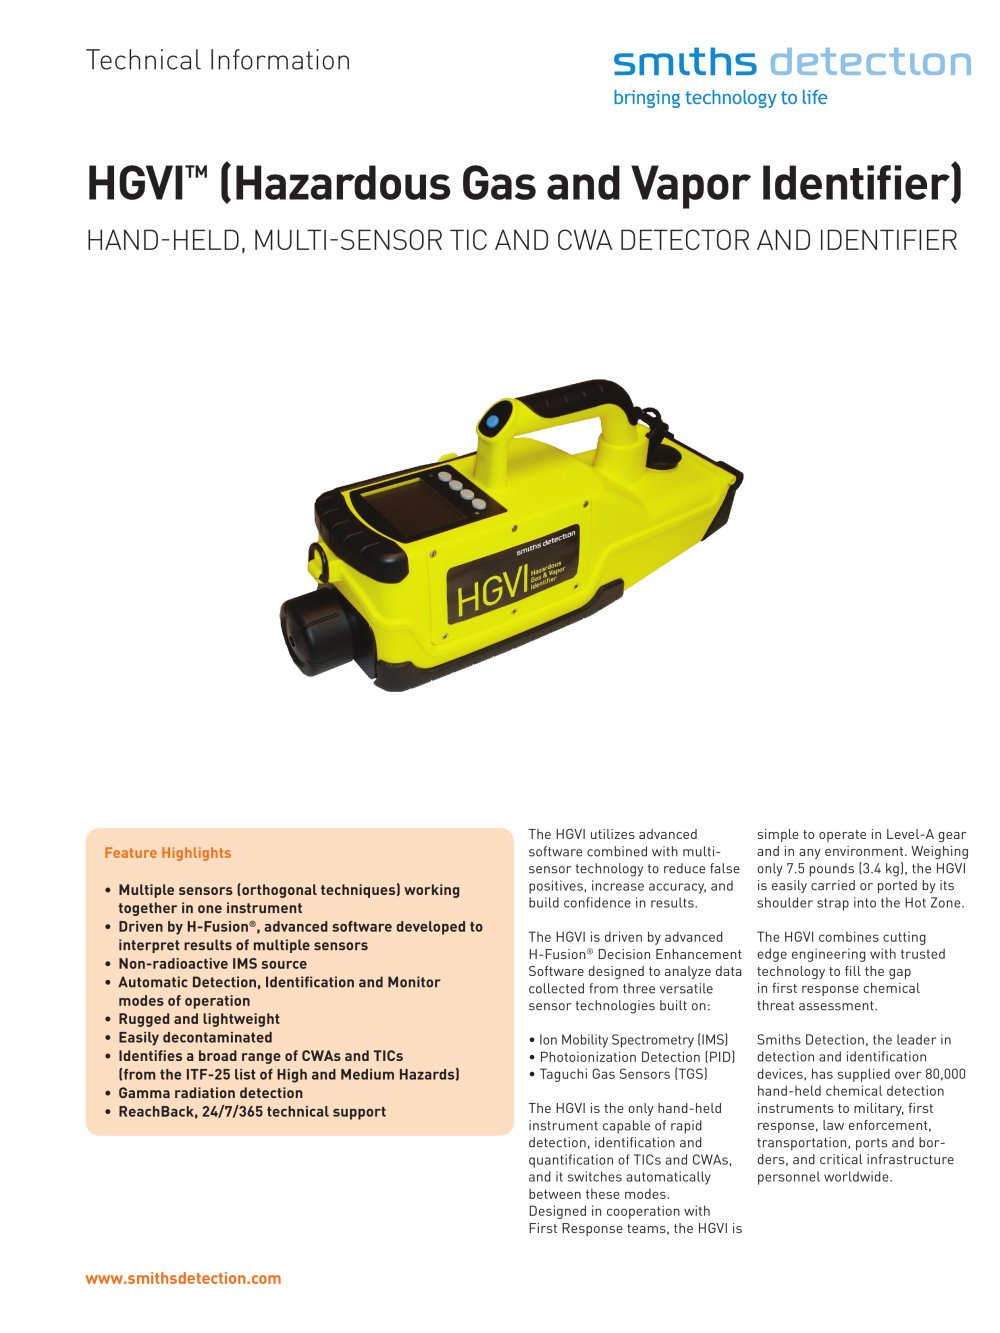 HGVI Hand-held, Multi-Sensor Gas & Vapor Identifier for TICs and CWAs - 1 /  2 Pages